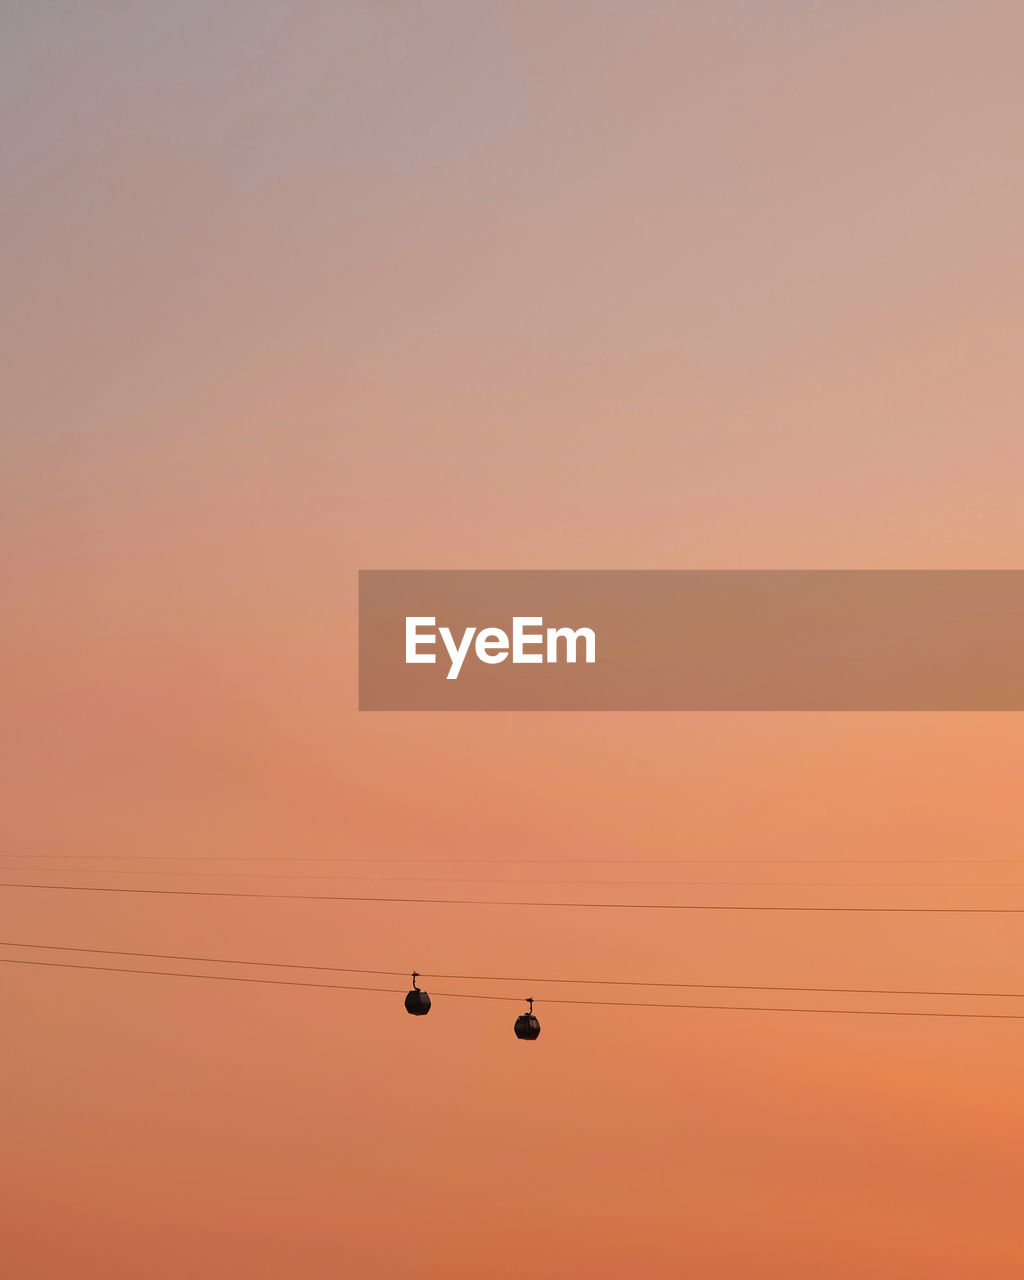 sky, sunset, orange color, cable, beauty in nature, silhouette, no people, electricity, copy space, nature, low angle view, scenics - nature, power line, tranquility, outdoors, connection, tranquil scene, technology, clear sky, idyllic, power supply, romantic sky, electrical equipment